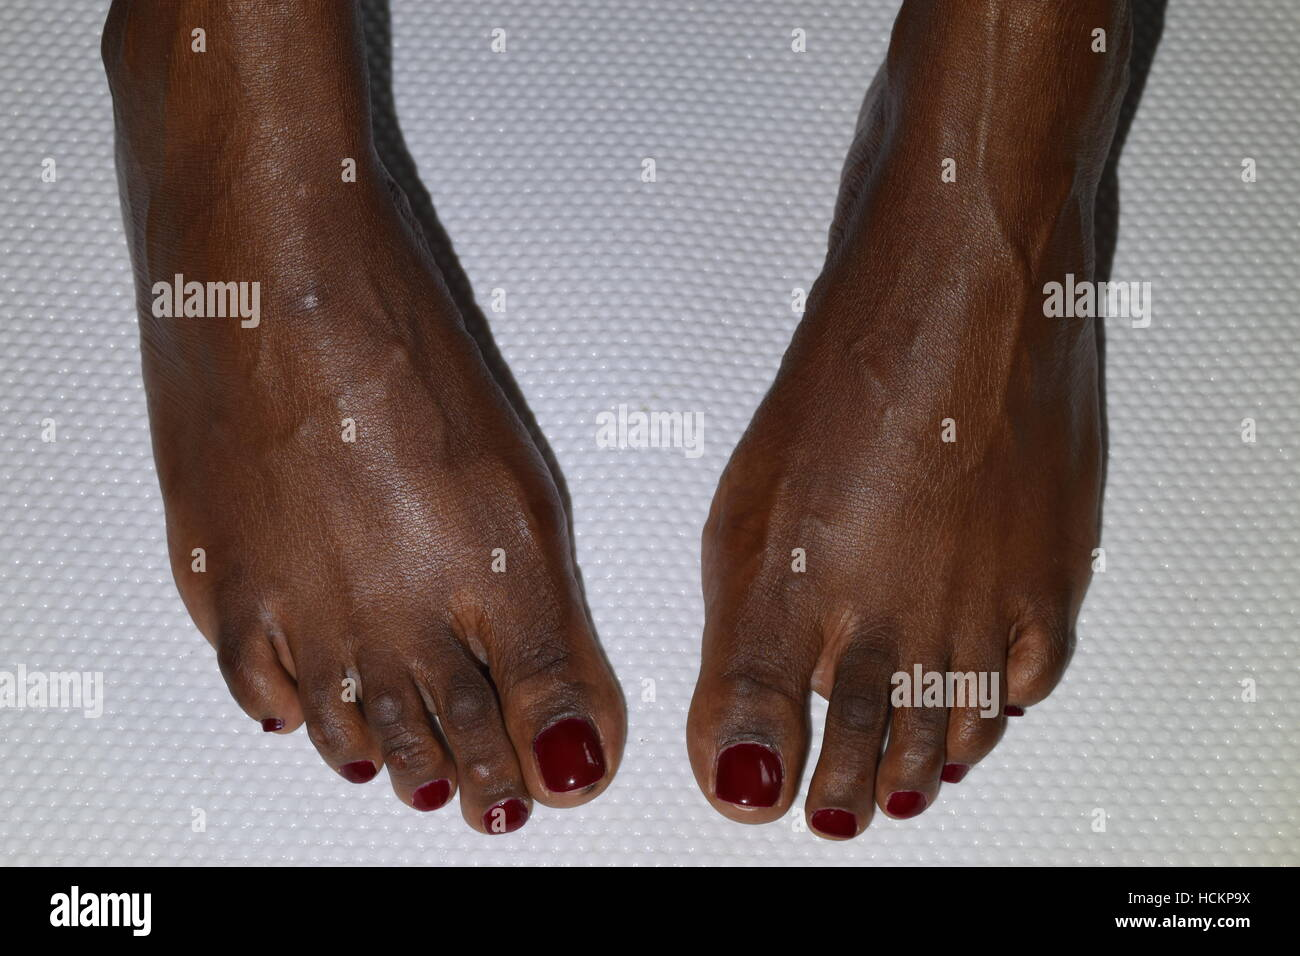 White Nail Polish On Dark Skin Toes